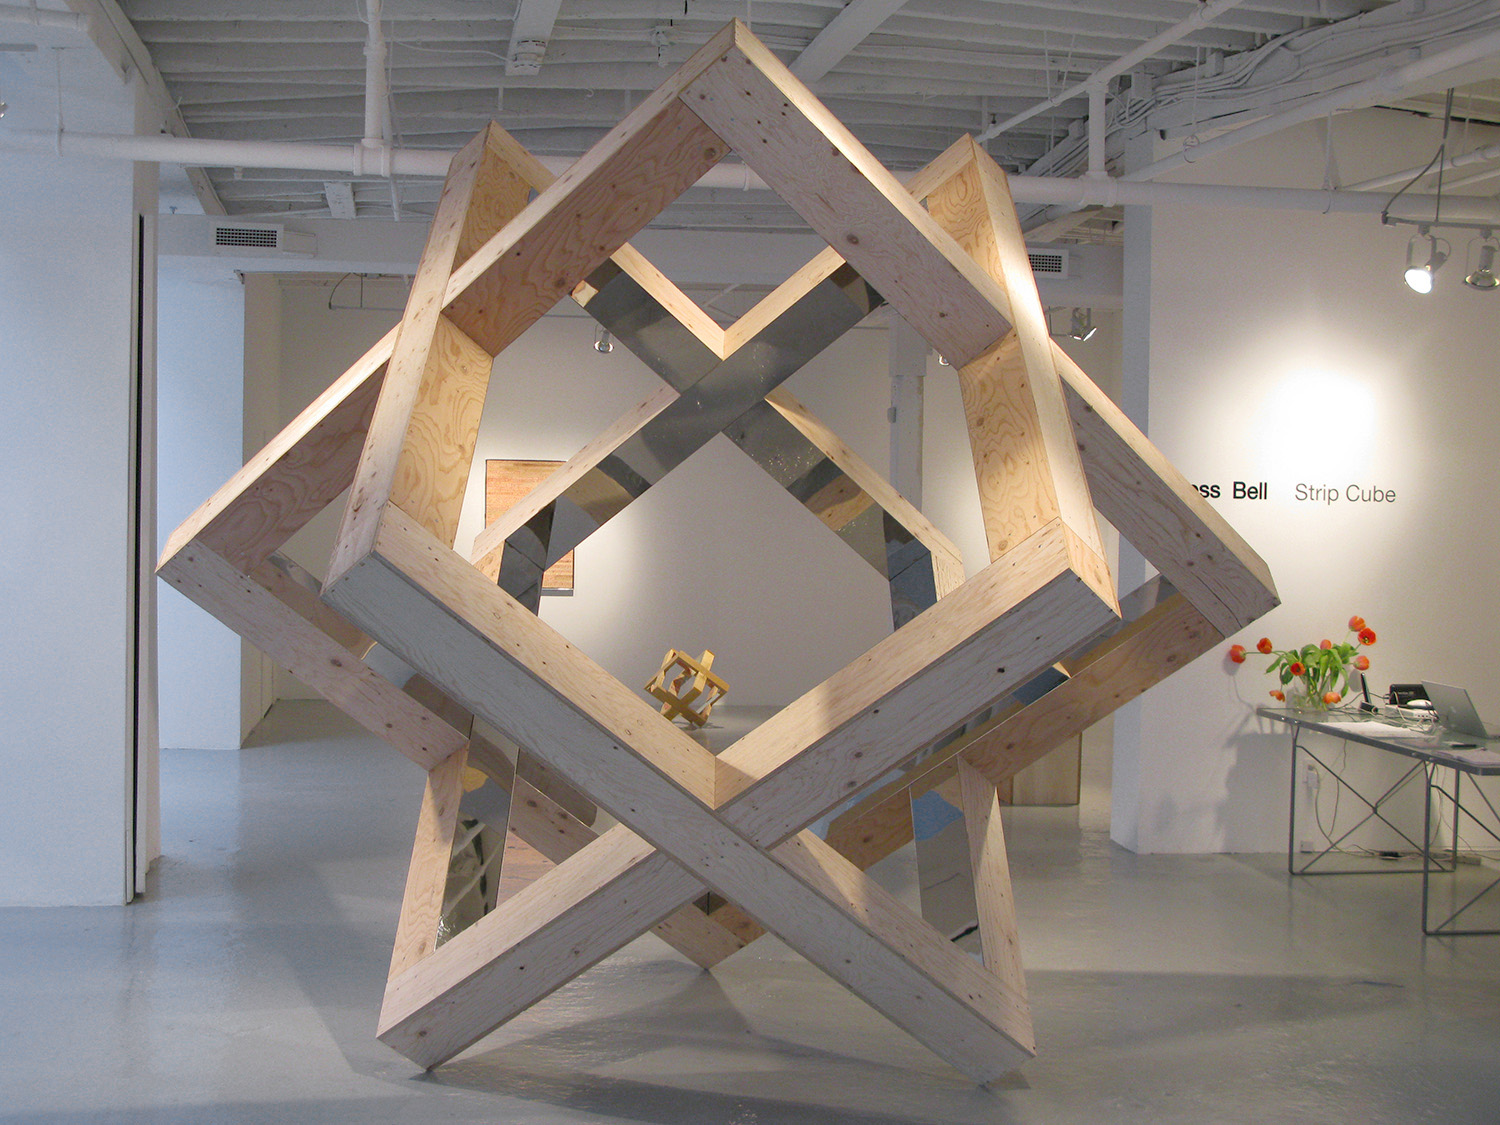 Strip Cube (Plywood), 2009, plywood, mirrored stainless steel, 8 x 8 x 8 feet